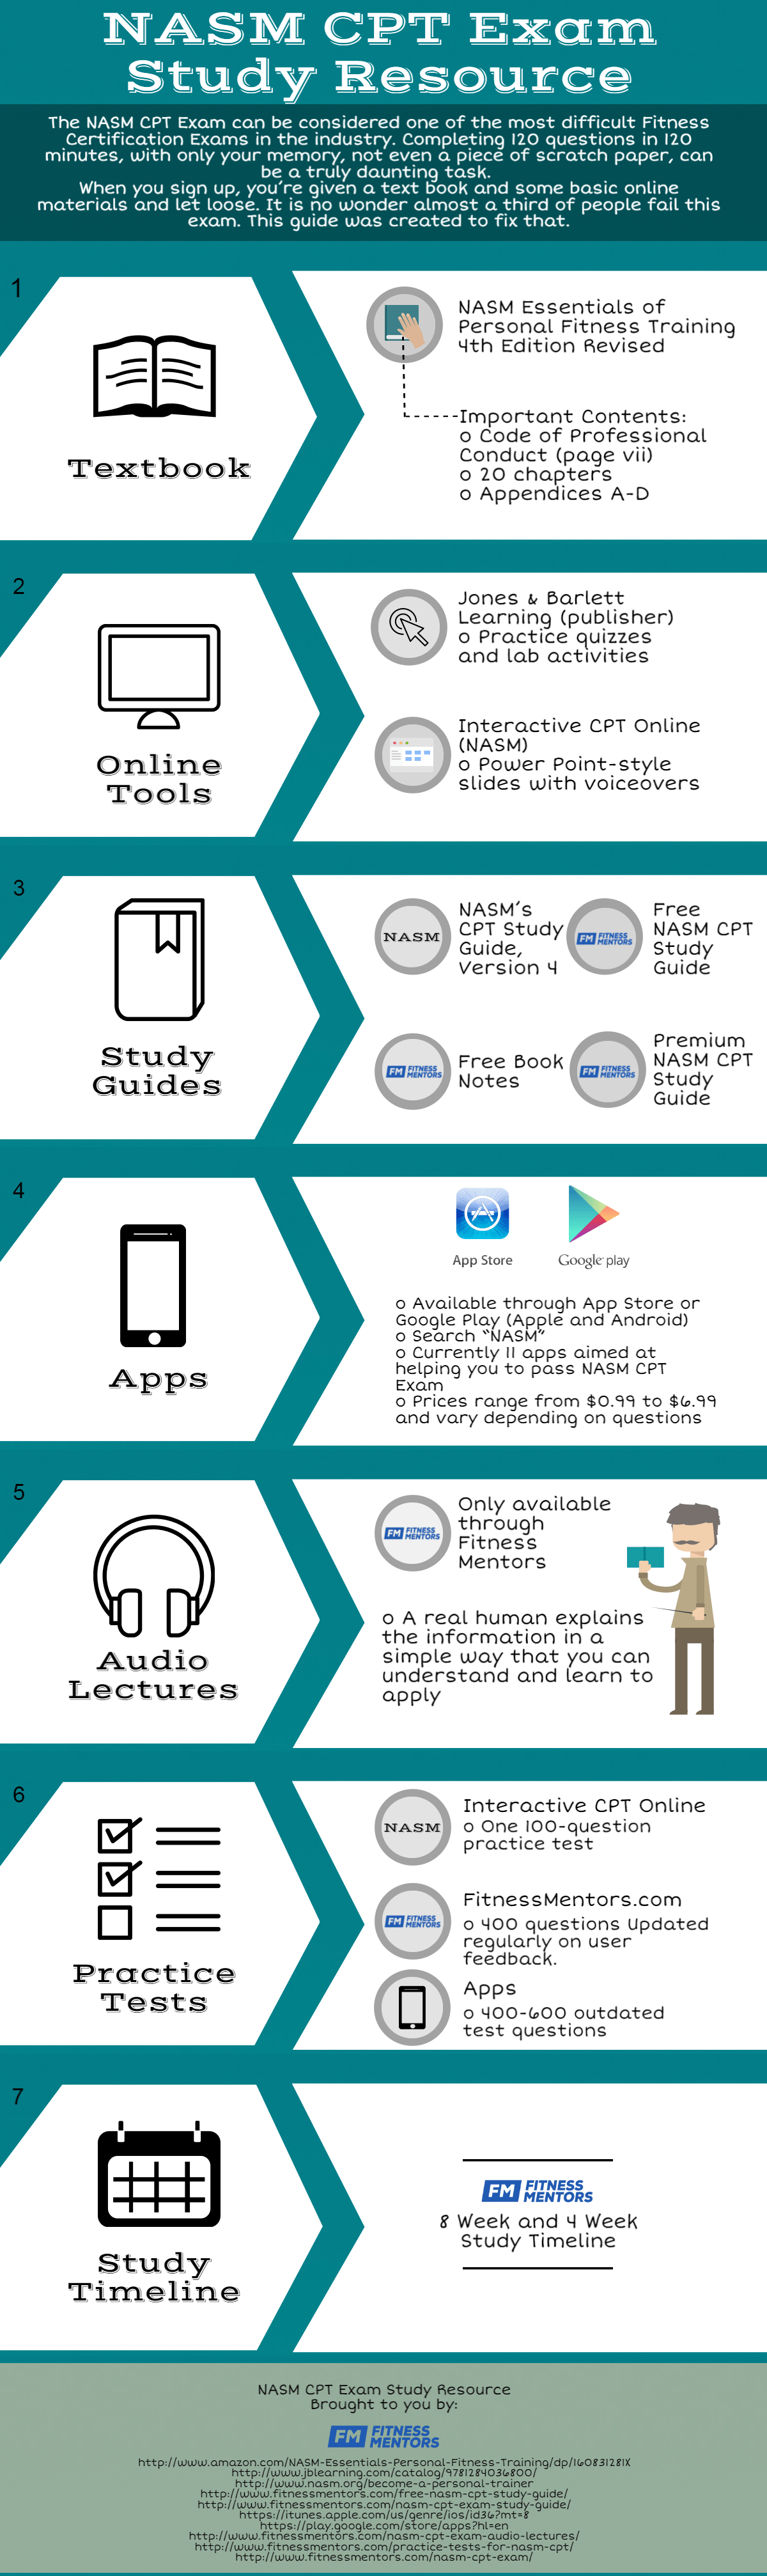 The only nasm cpt exam study resource youll ever need infographic bonus 4 week and 8 week timeline for studying for your nasm cpt exam xflitez Image collections